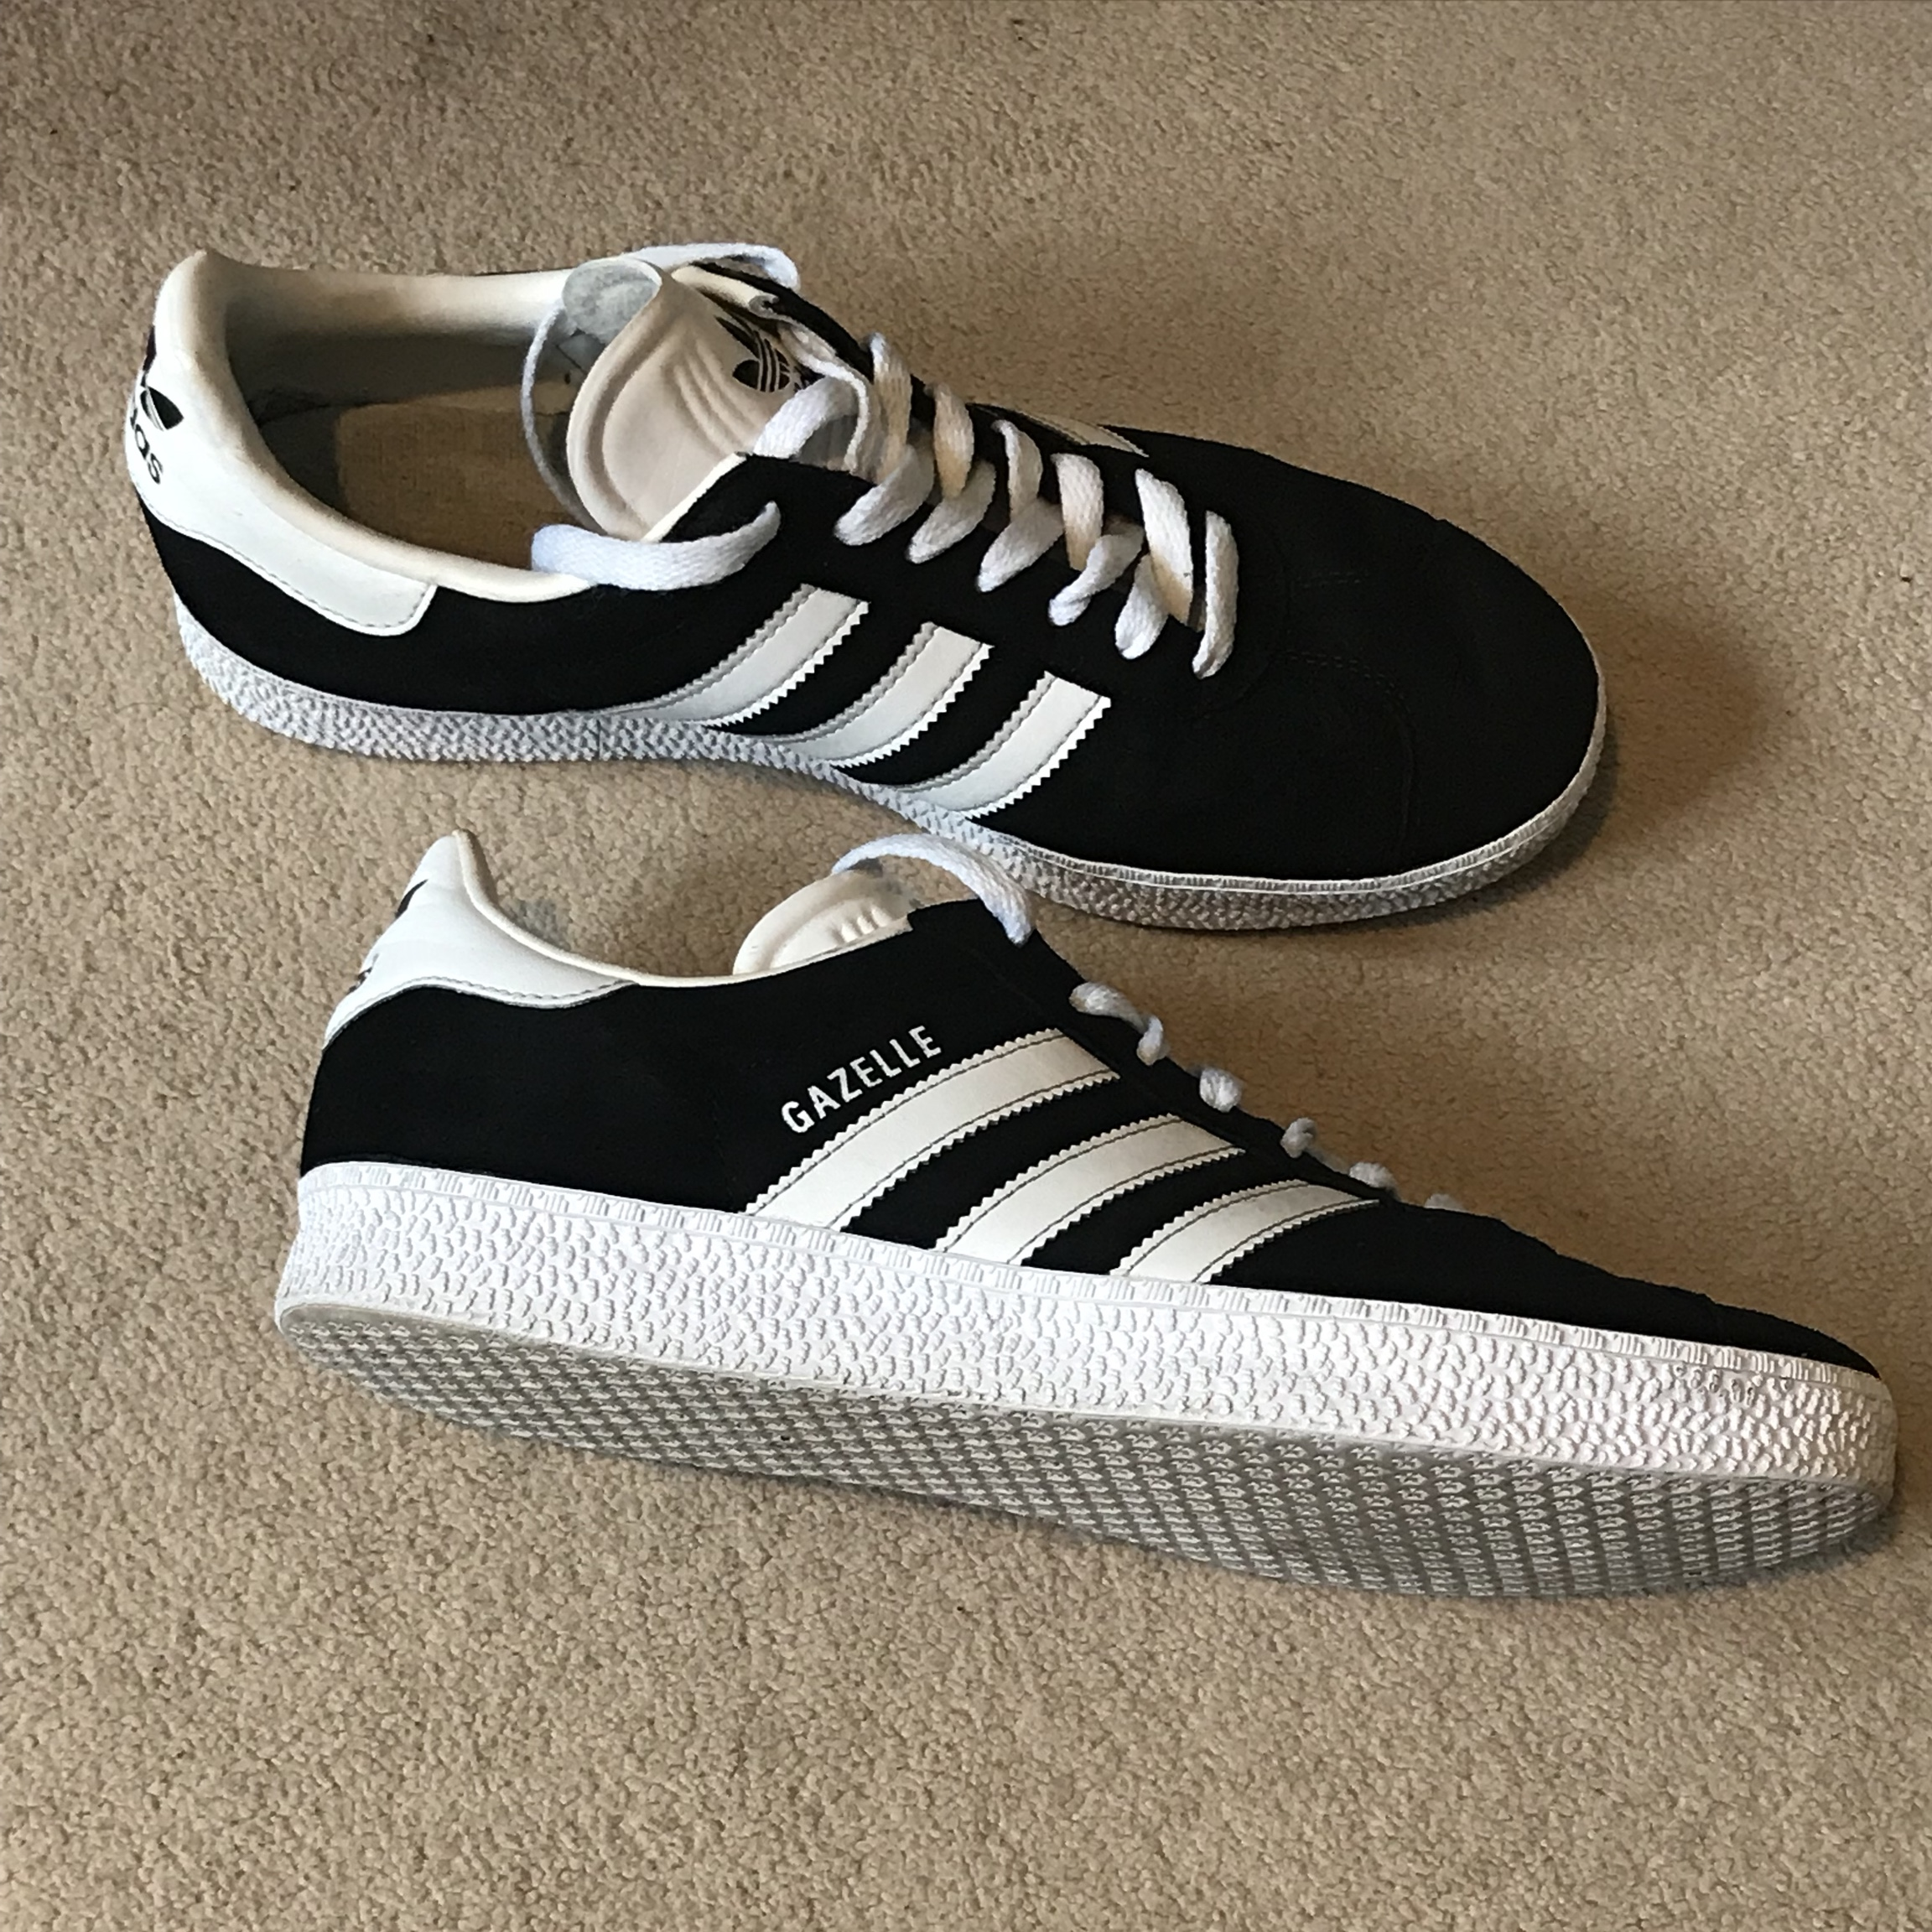 810 condition Adidas Gazelle. Black and White. Size Depop